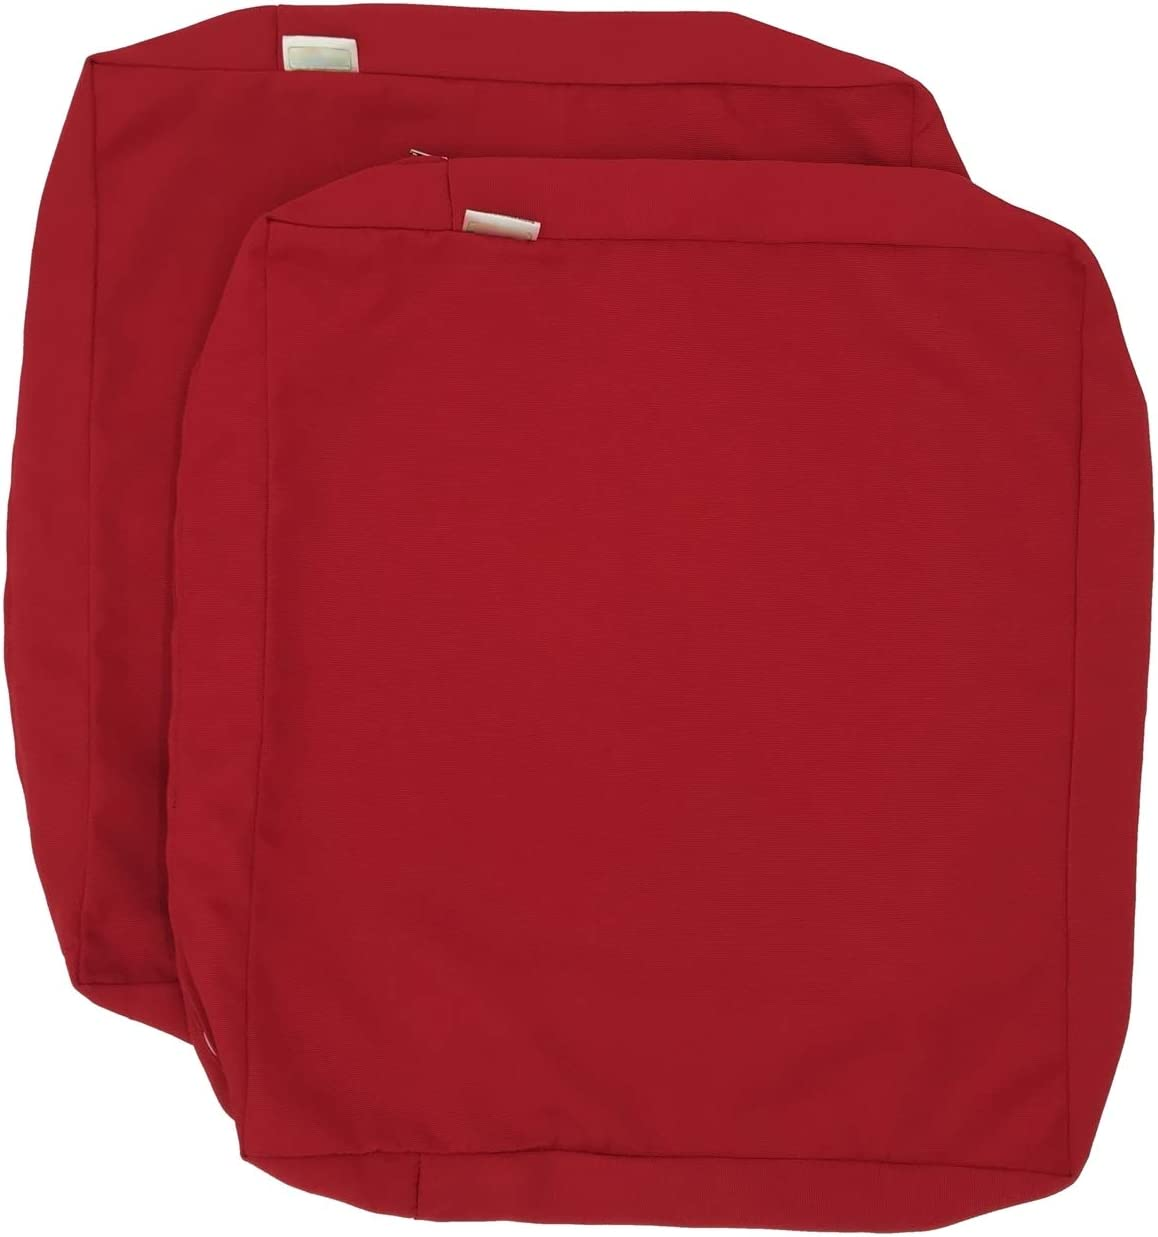 El Paso Mall CozyLounge Lava Red Outdoor Water Patio Cushion Chair Sales for sale Repellent